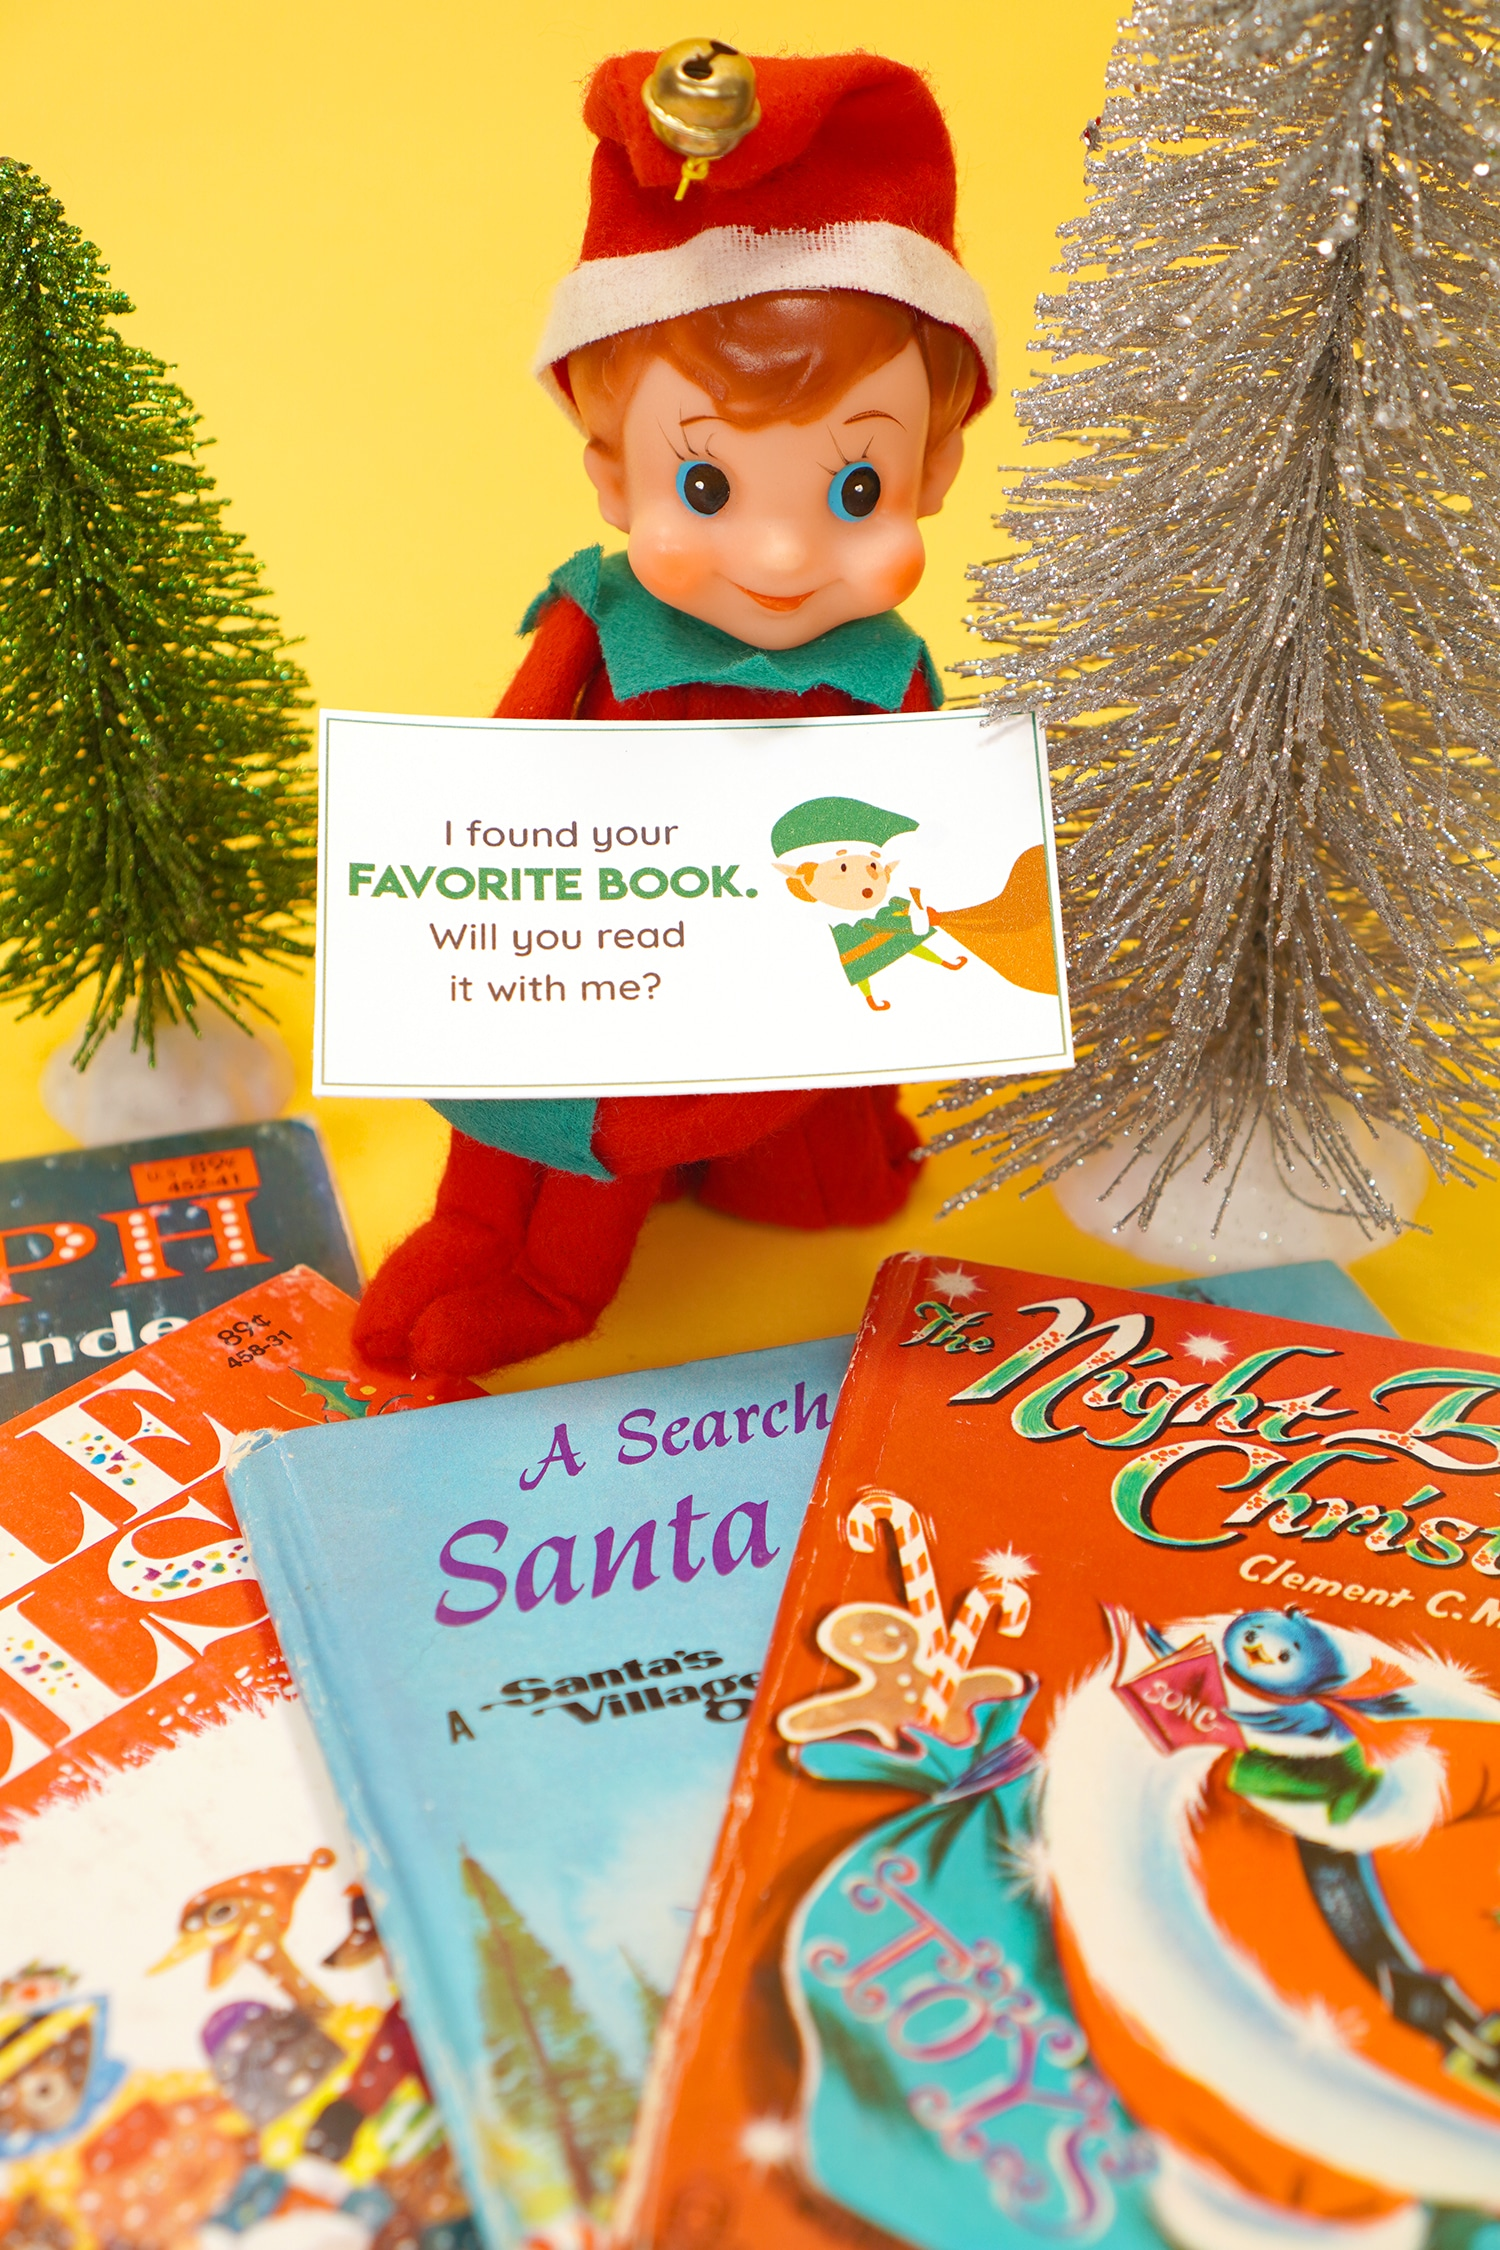 Vintage Elf on the Shelf with Vintage Christmas books, glitter sisal trees, and printable Elf on the Shelf note card